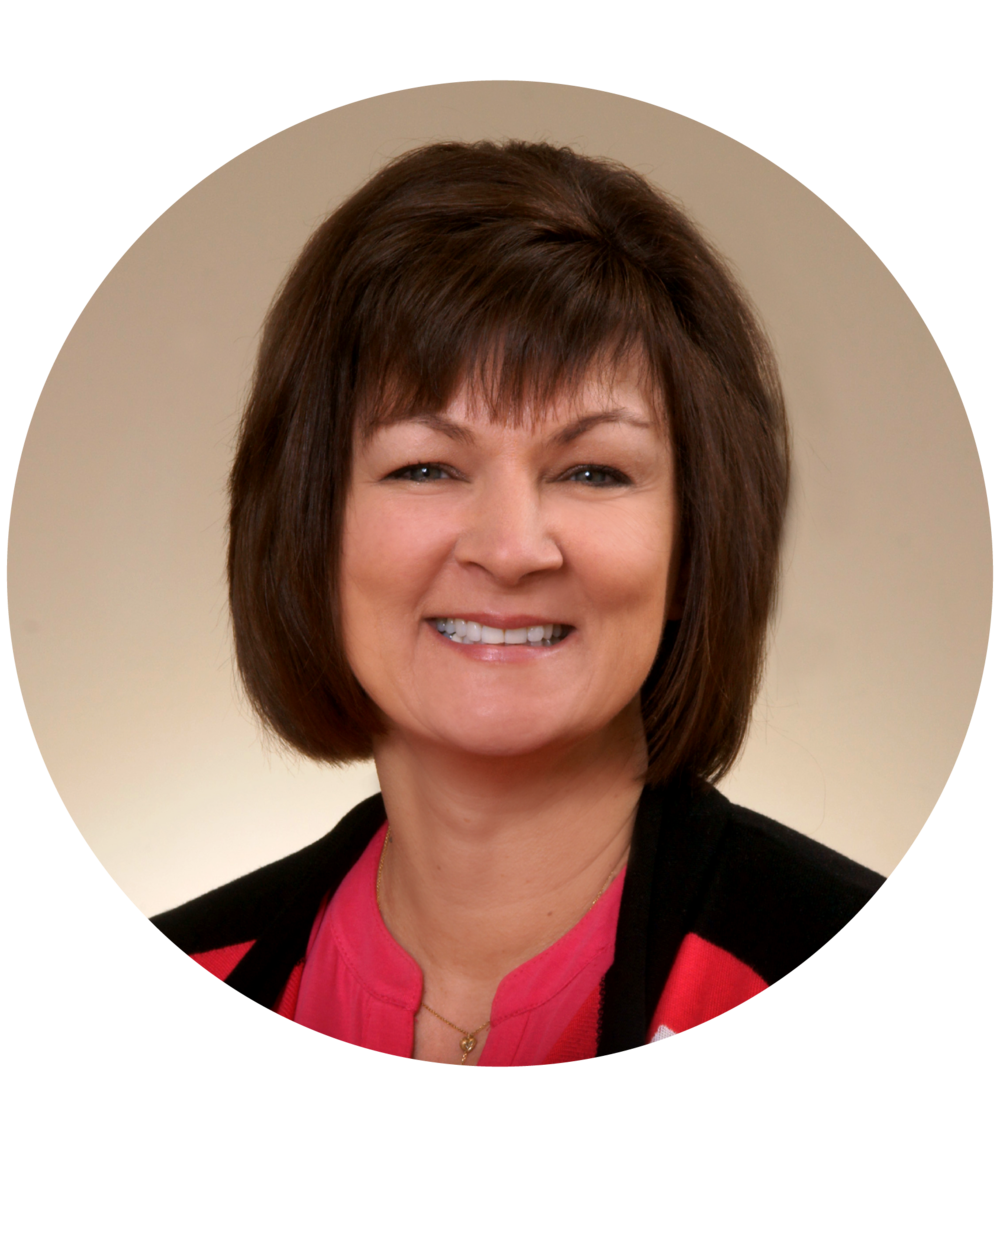 Donna Wall - Donna joined the firm in January, 2016.  She is the firm's Accounts Payable and Office Manager.